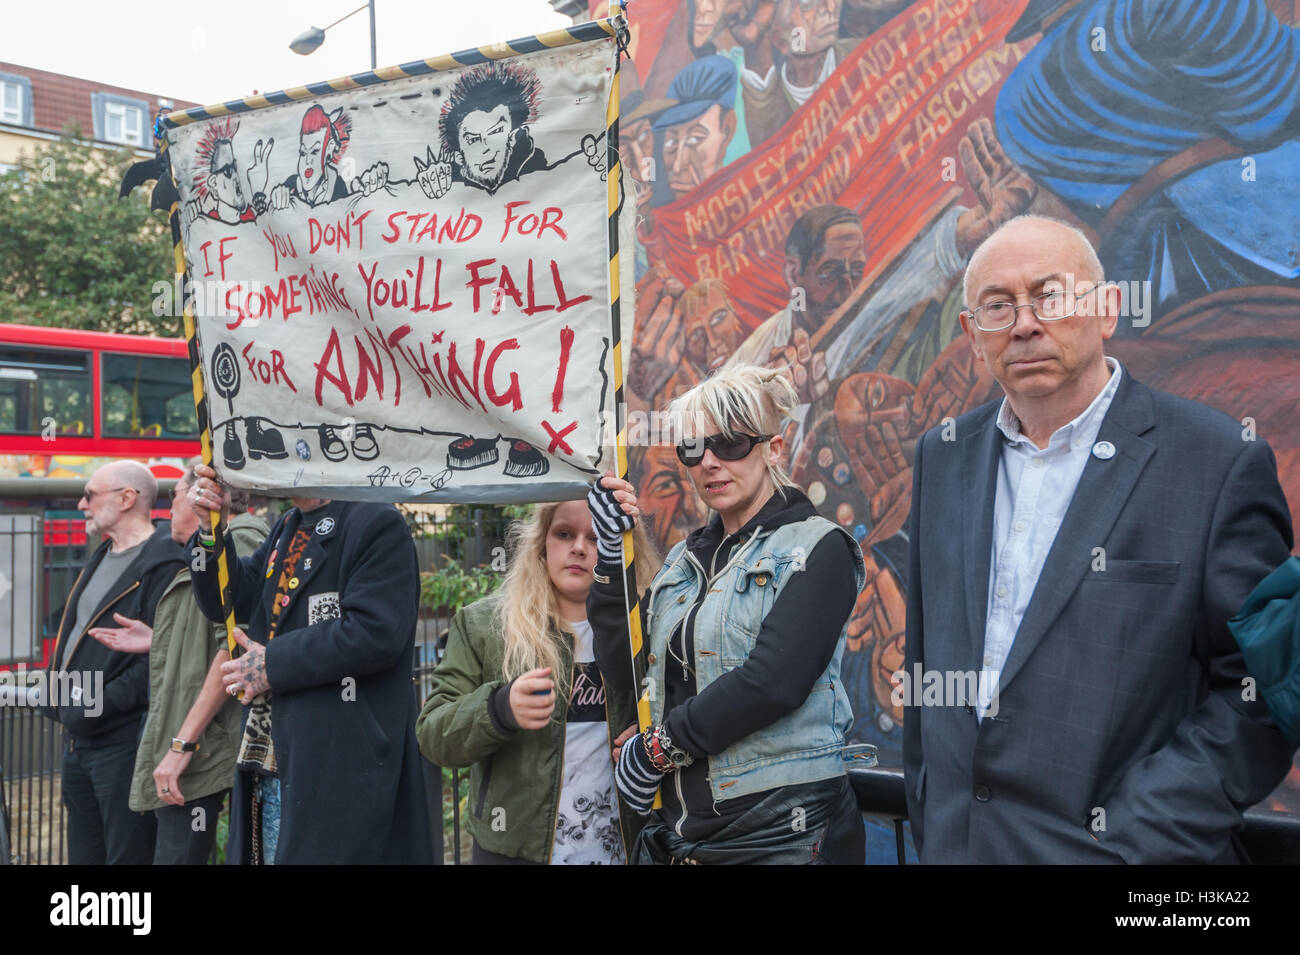 London, UK. 9th October 2016. Ian Bone of Class War stands next to one of their banners in front of the Cable Street - Stock Image